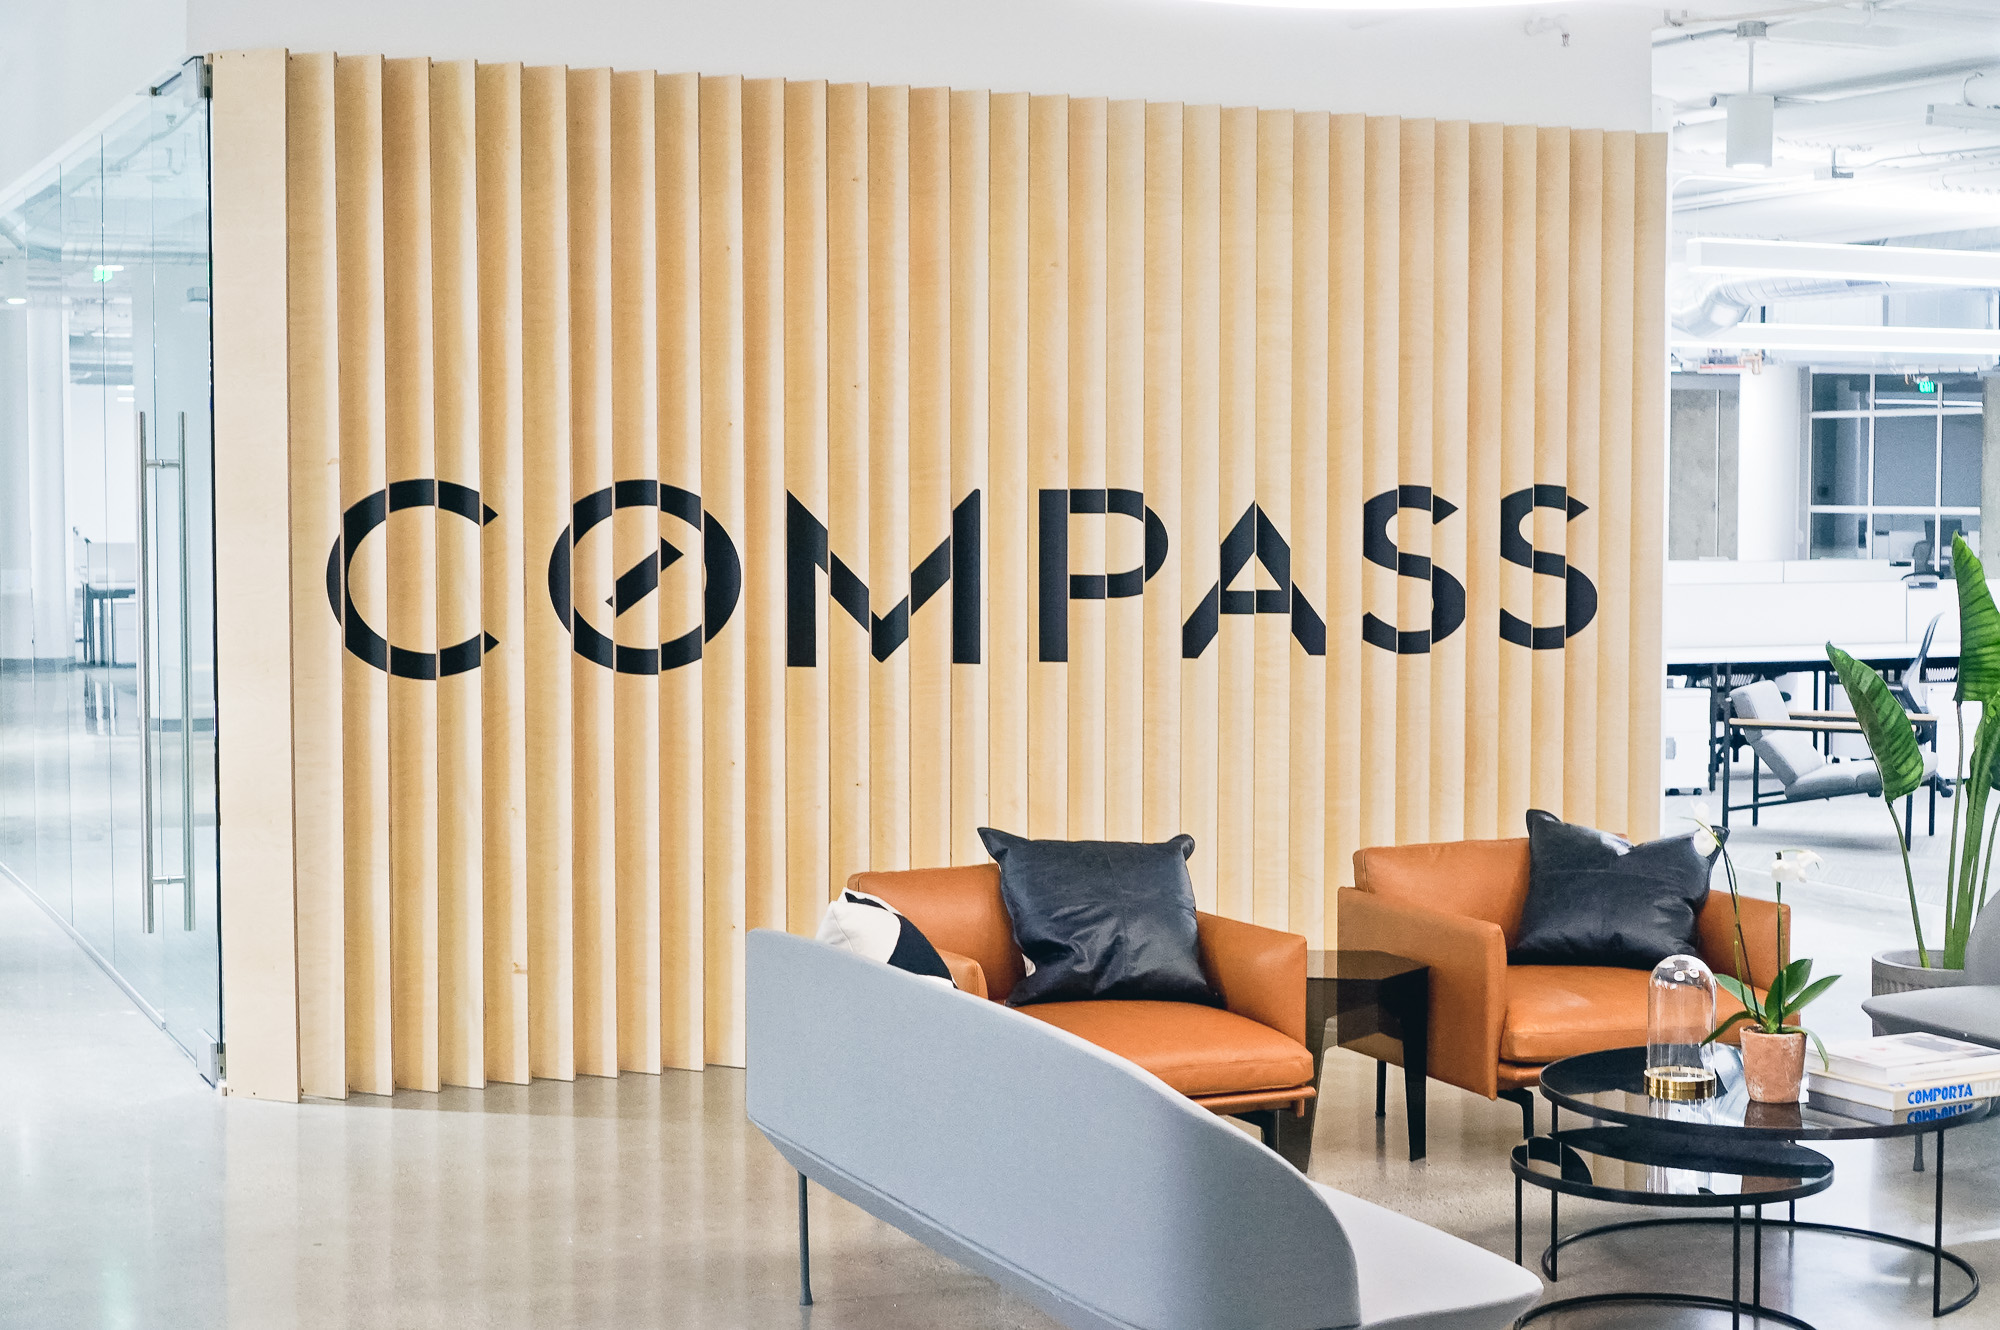 Optical-illusion, multi panel wood sign / privacy screen at the San Francisco office of Compass, a modern real estate platform.